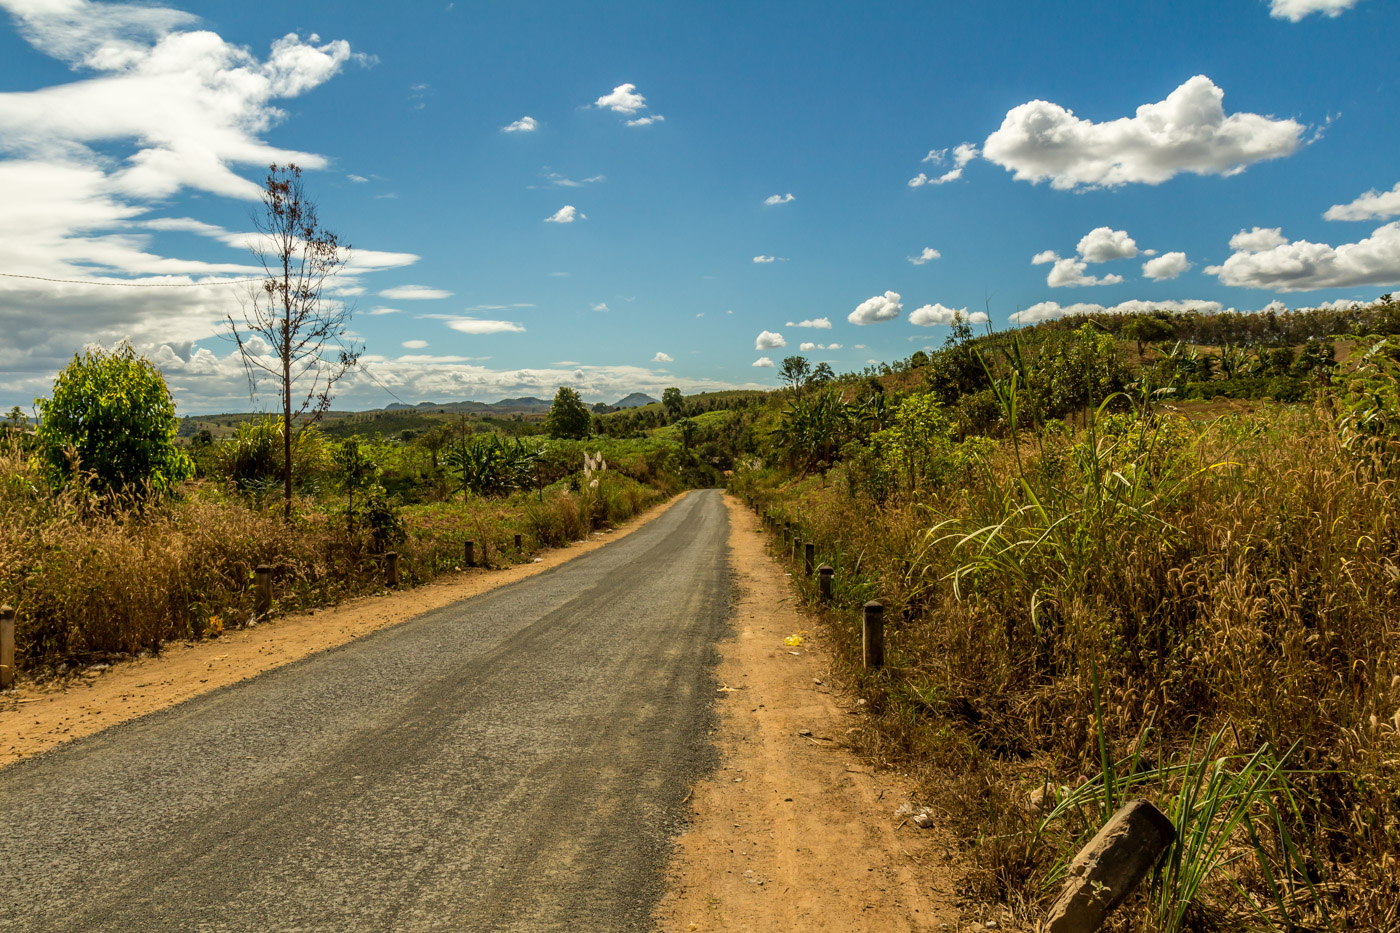 Down the back road, and into the countryside.